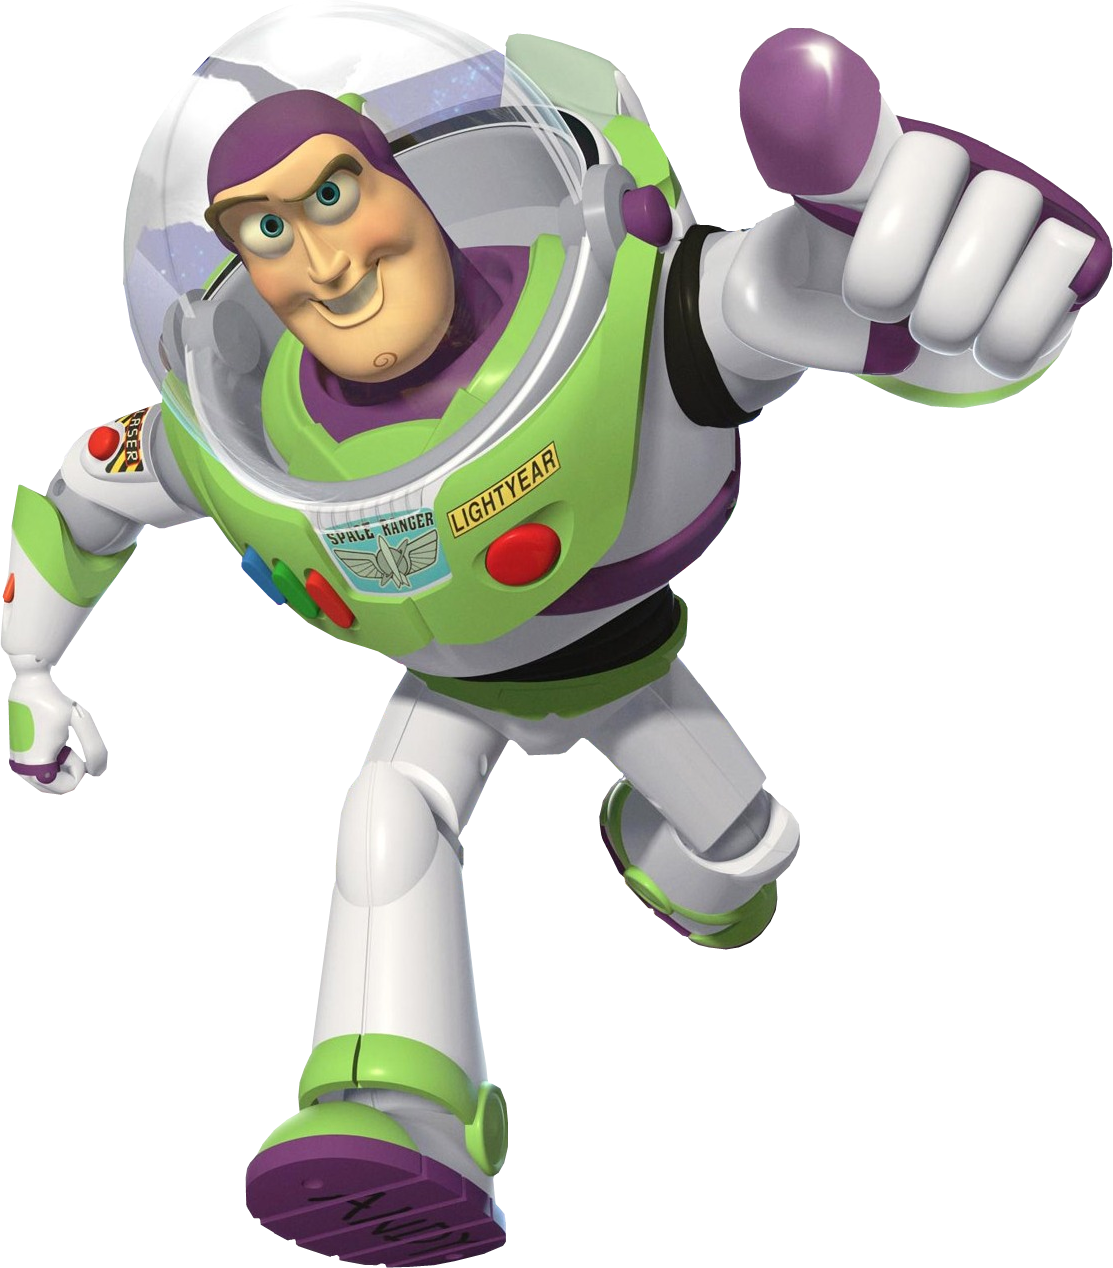 Buzz Png More buzz items as requested.